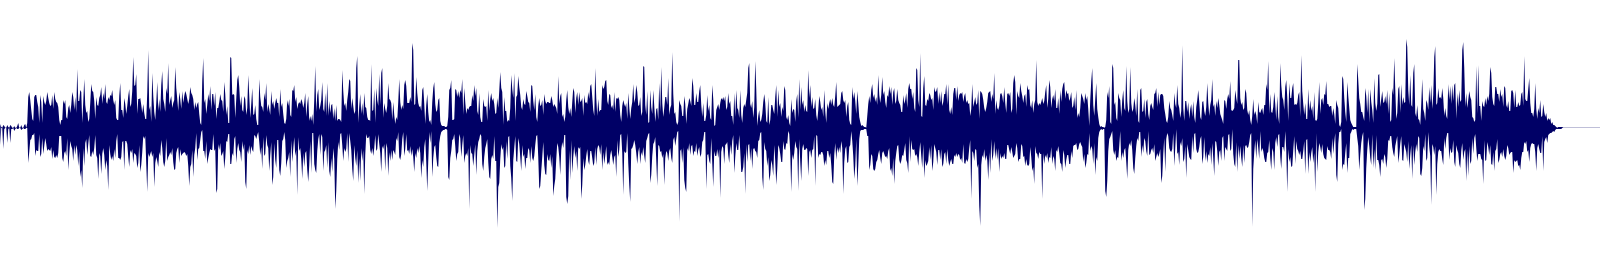 waveform of track #100963